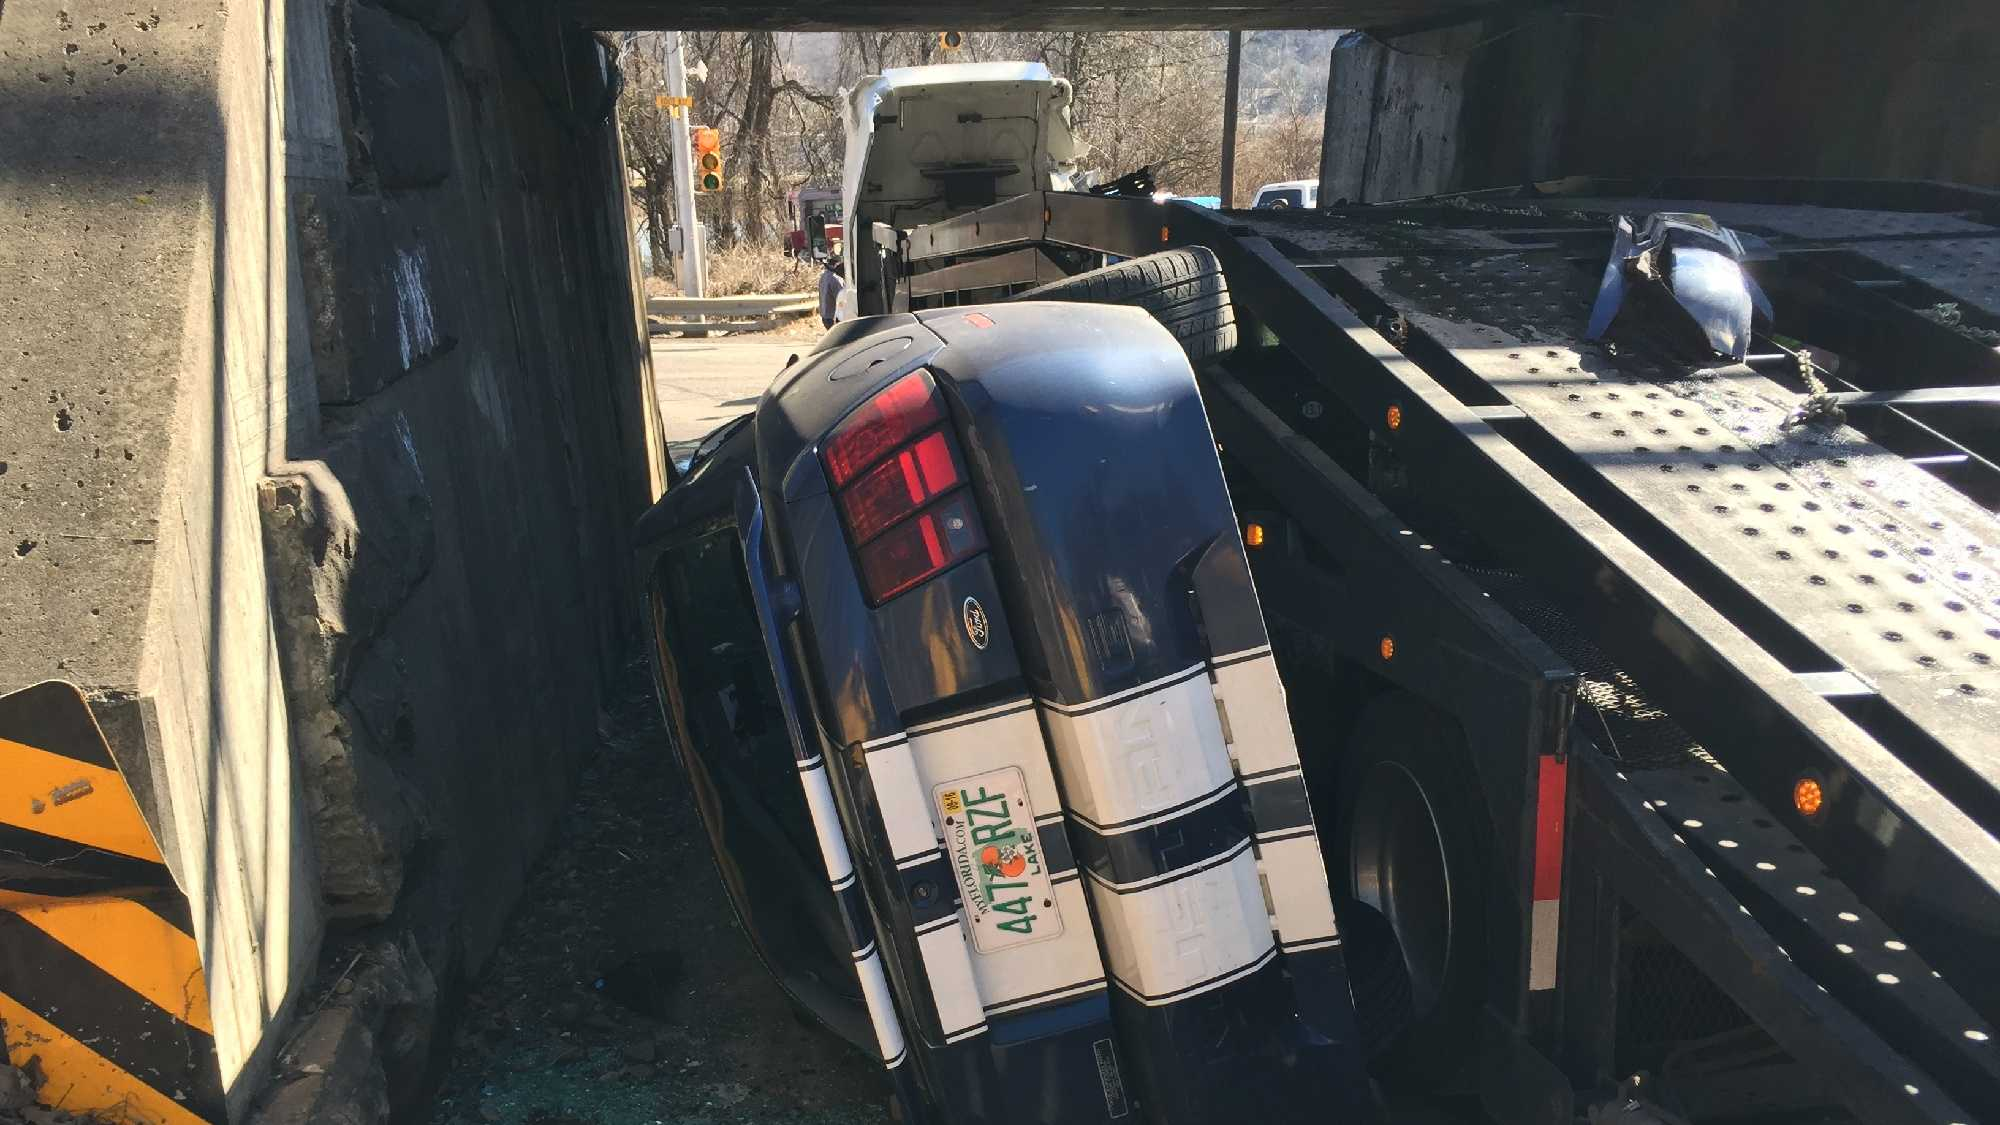 Two vehicles were damaged after a car carrier got stuck inside a tunnel in West Mifflin Sunday afternoon.